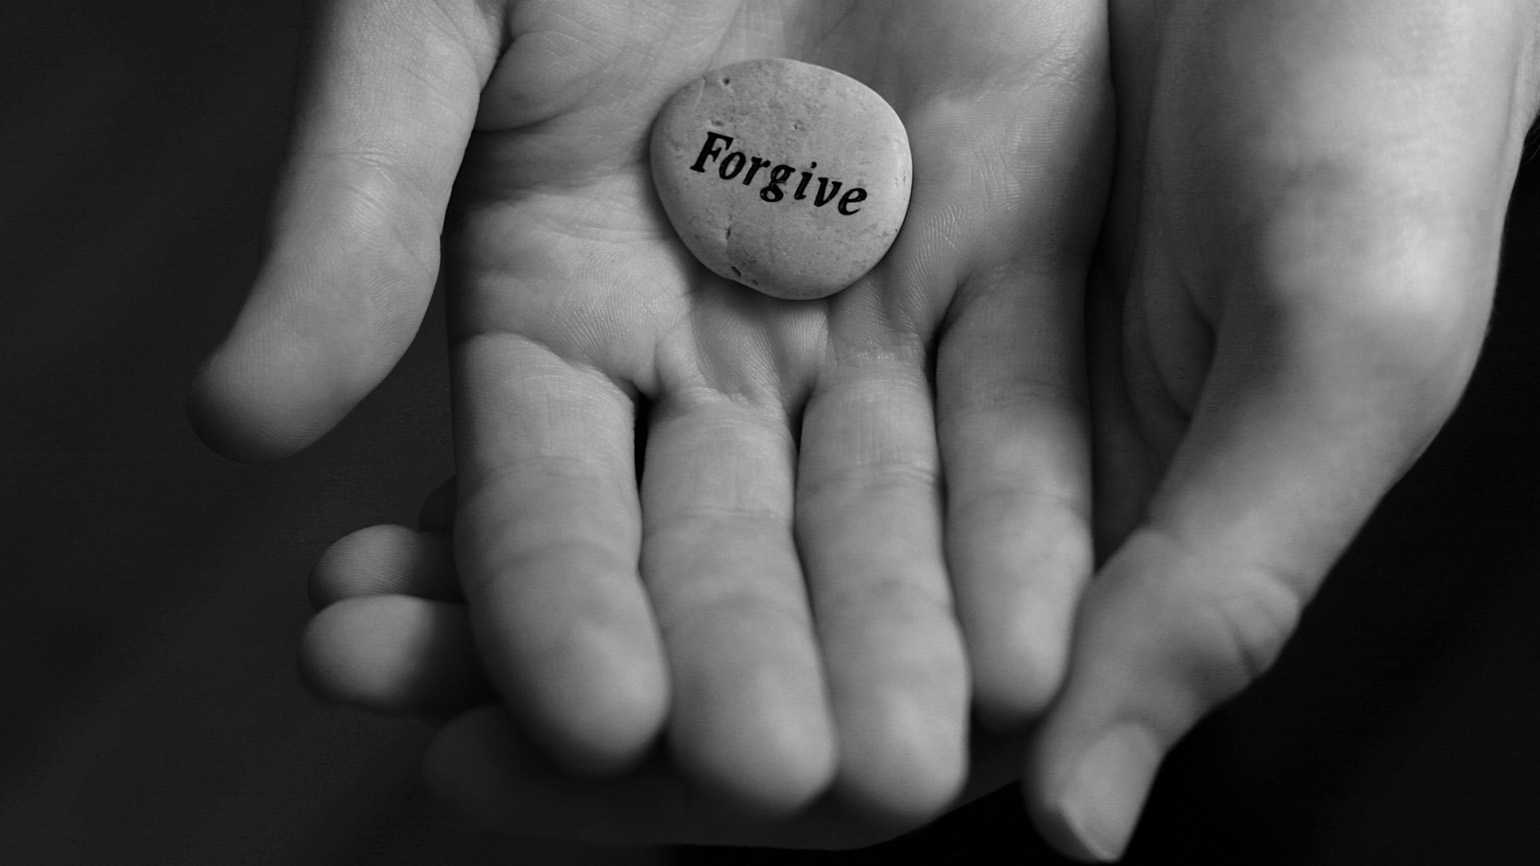 A black and white photo of hands holding a stone with 'Forgive' engraved on it.